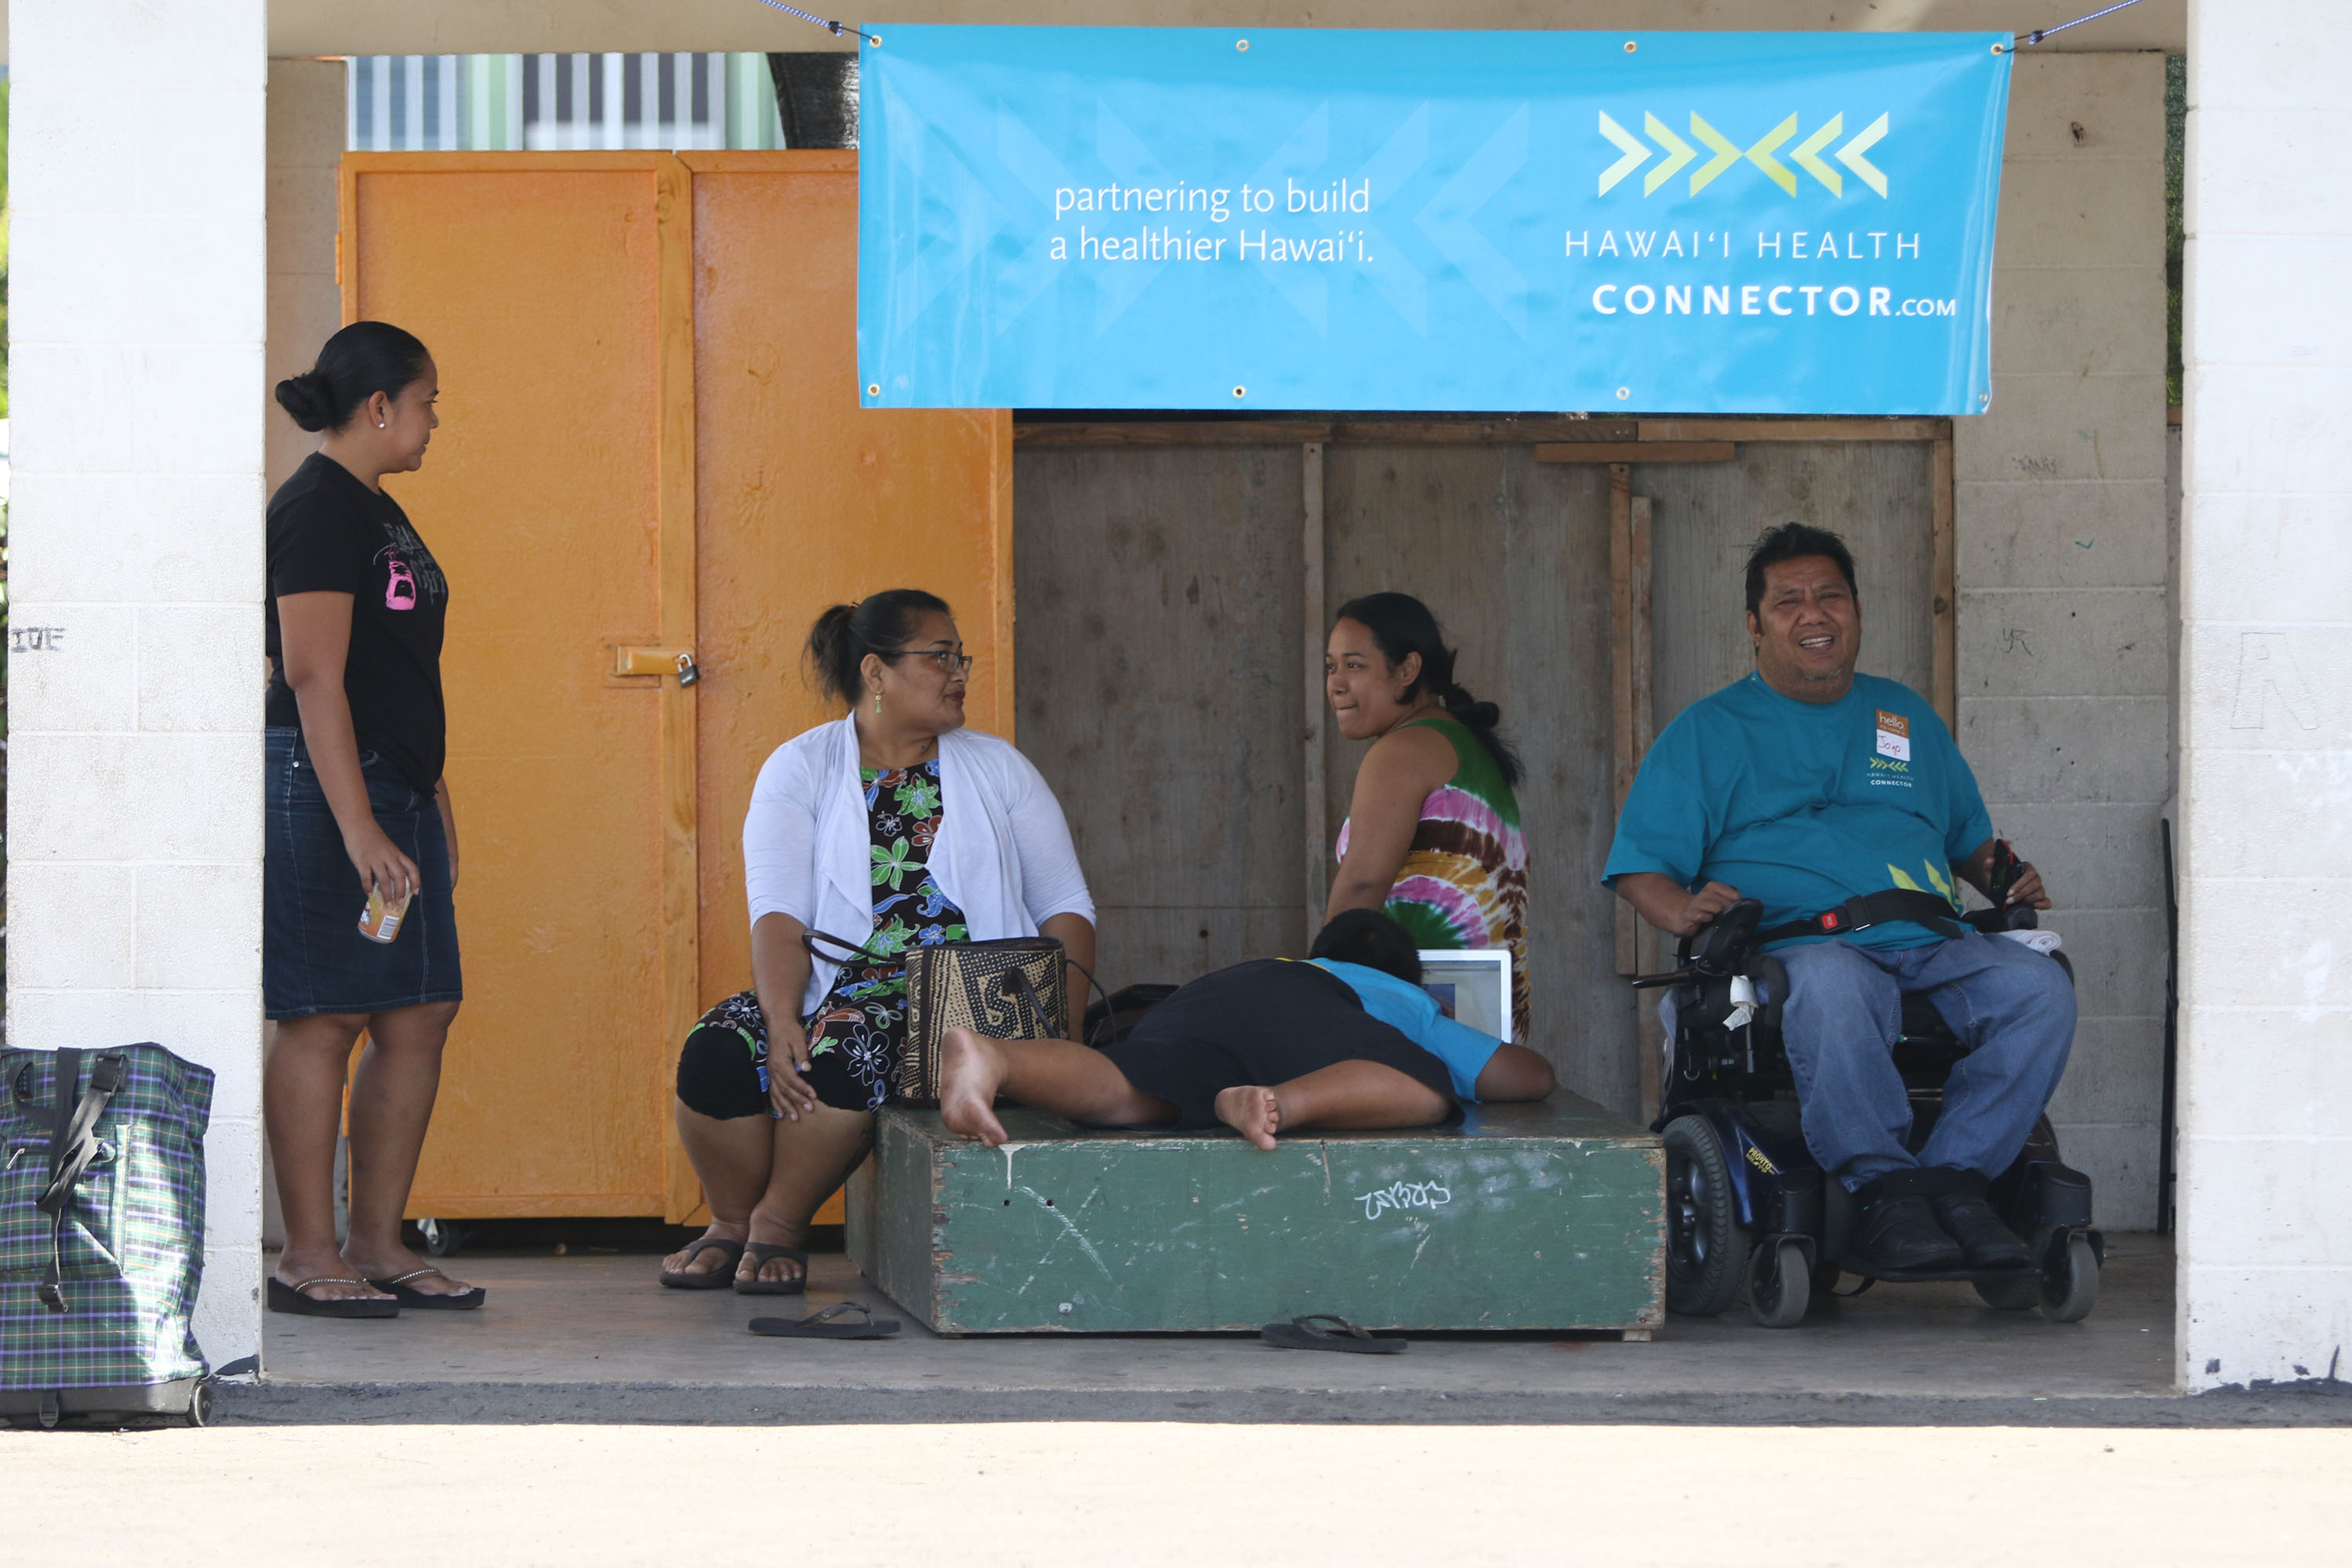 <p>Jojo Peter, right, and Josie Howard, second from left, are two immigrants from Chuuk who have made new lives for themselves in Honolulu. They now lead organizations that are helping other Micronesians assimilate.</p>